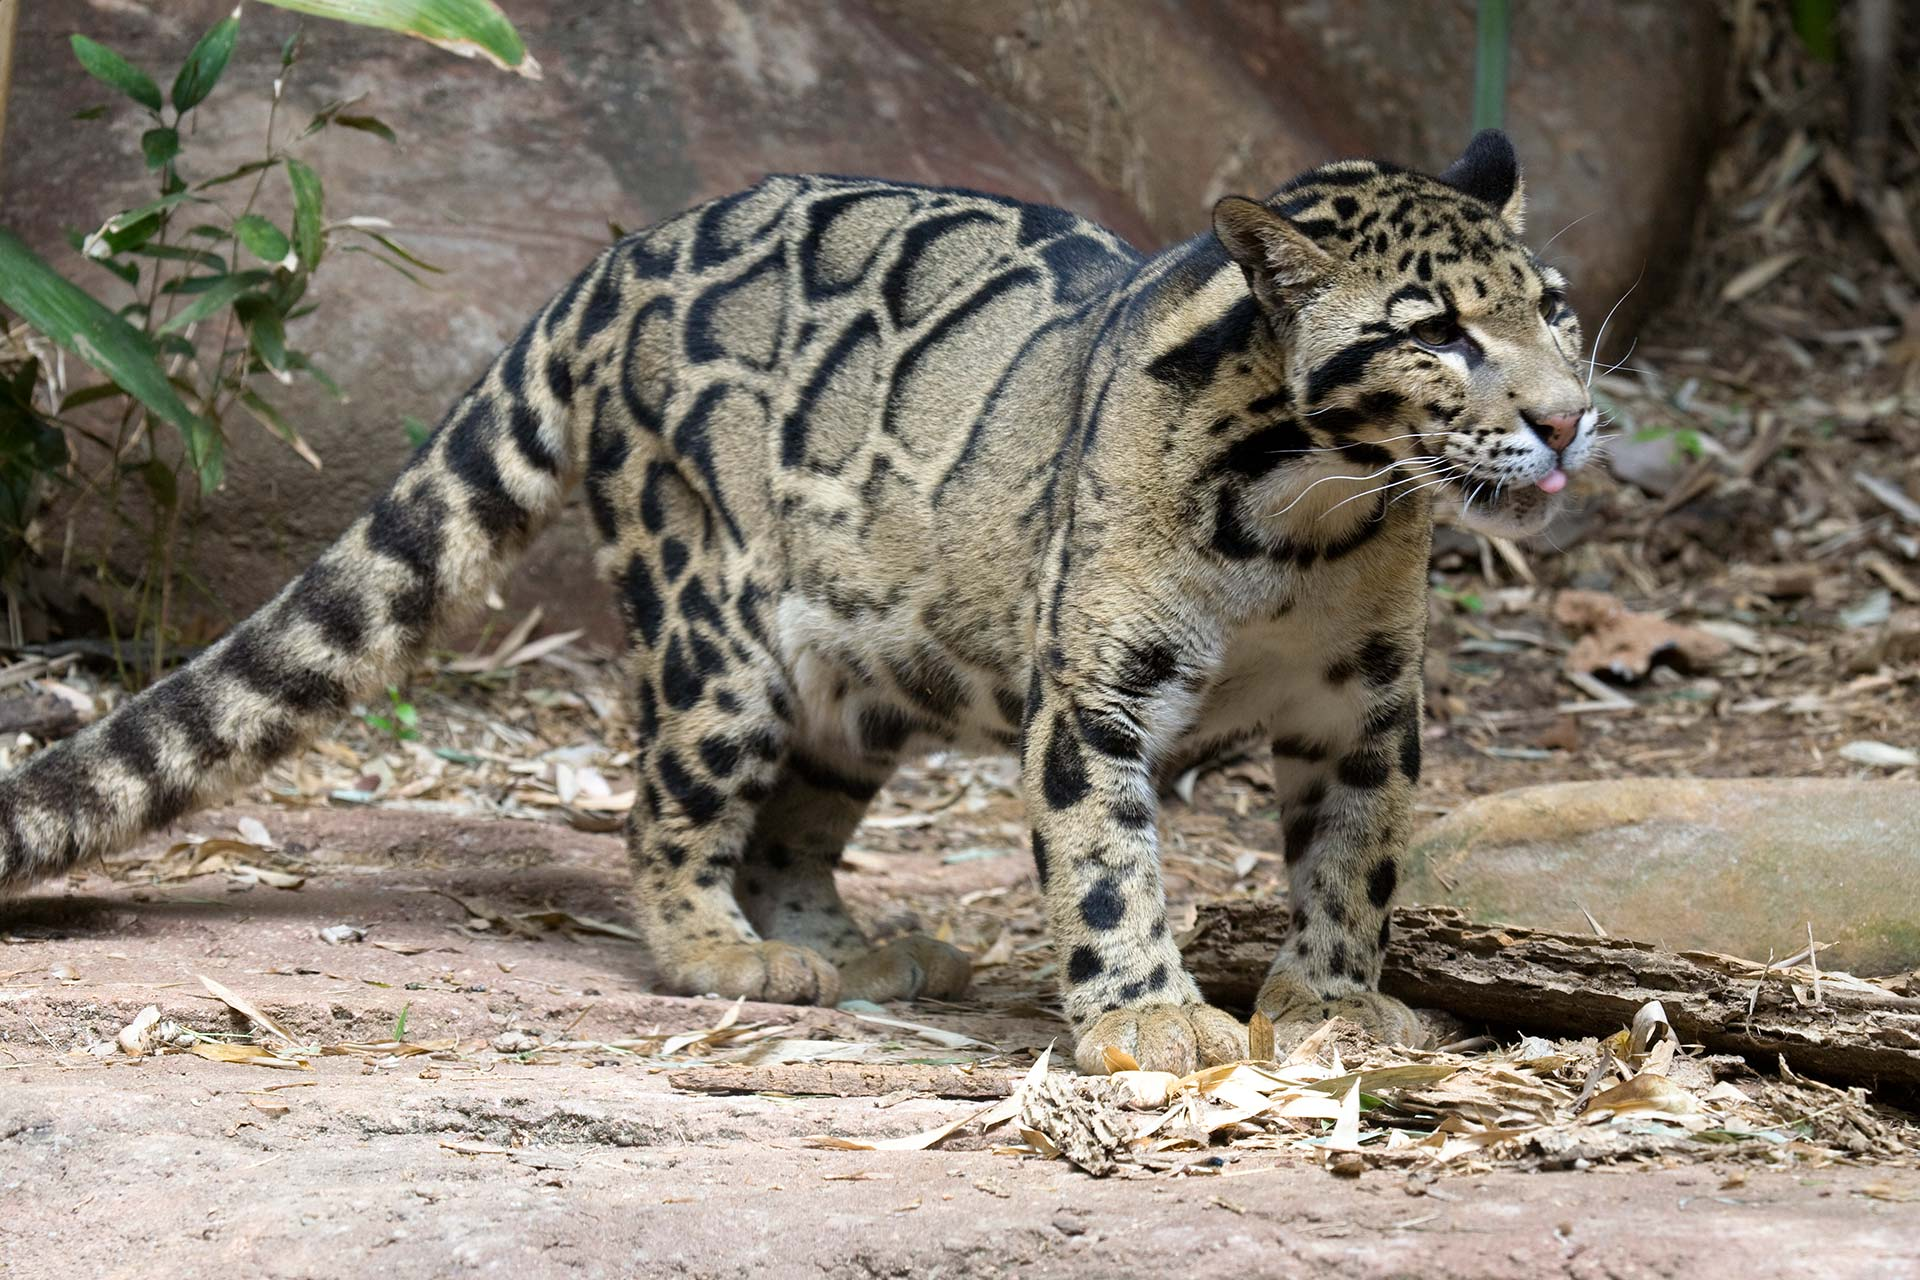 Nepalese Clouded Leopard